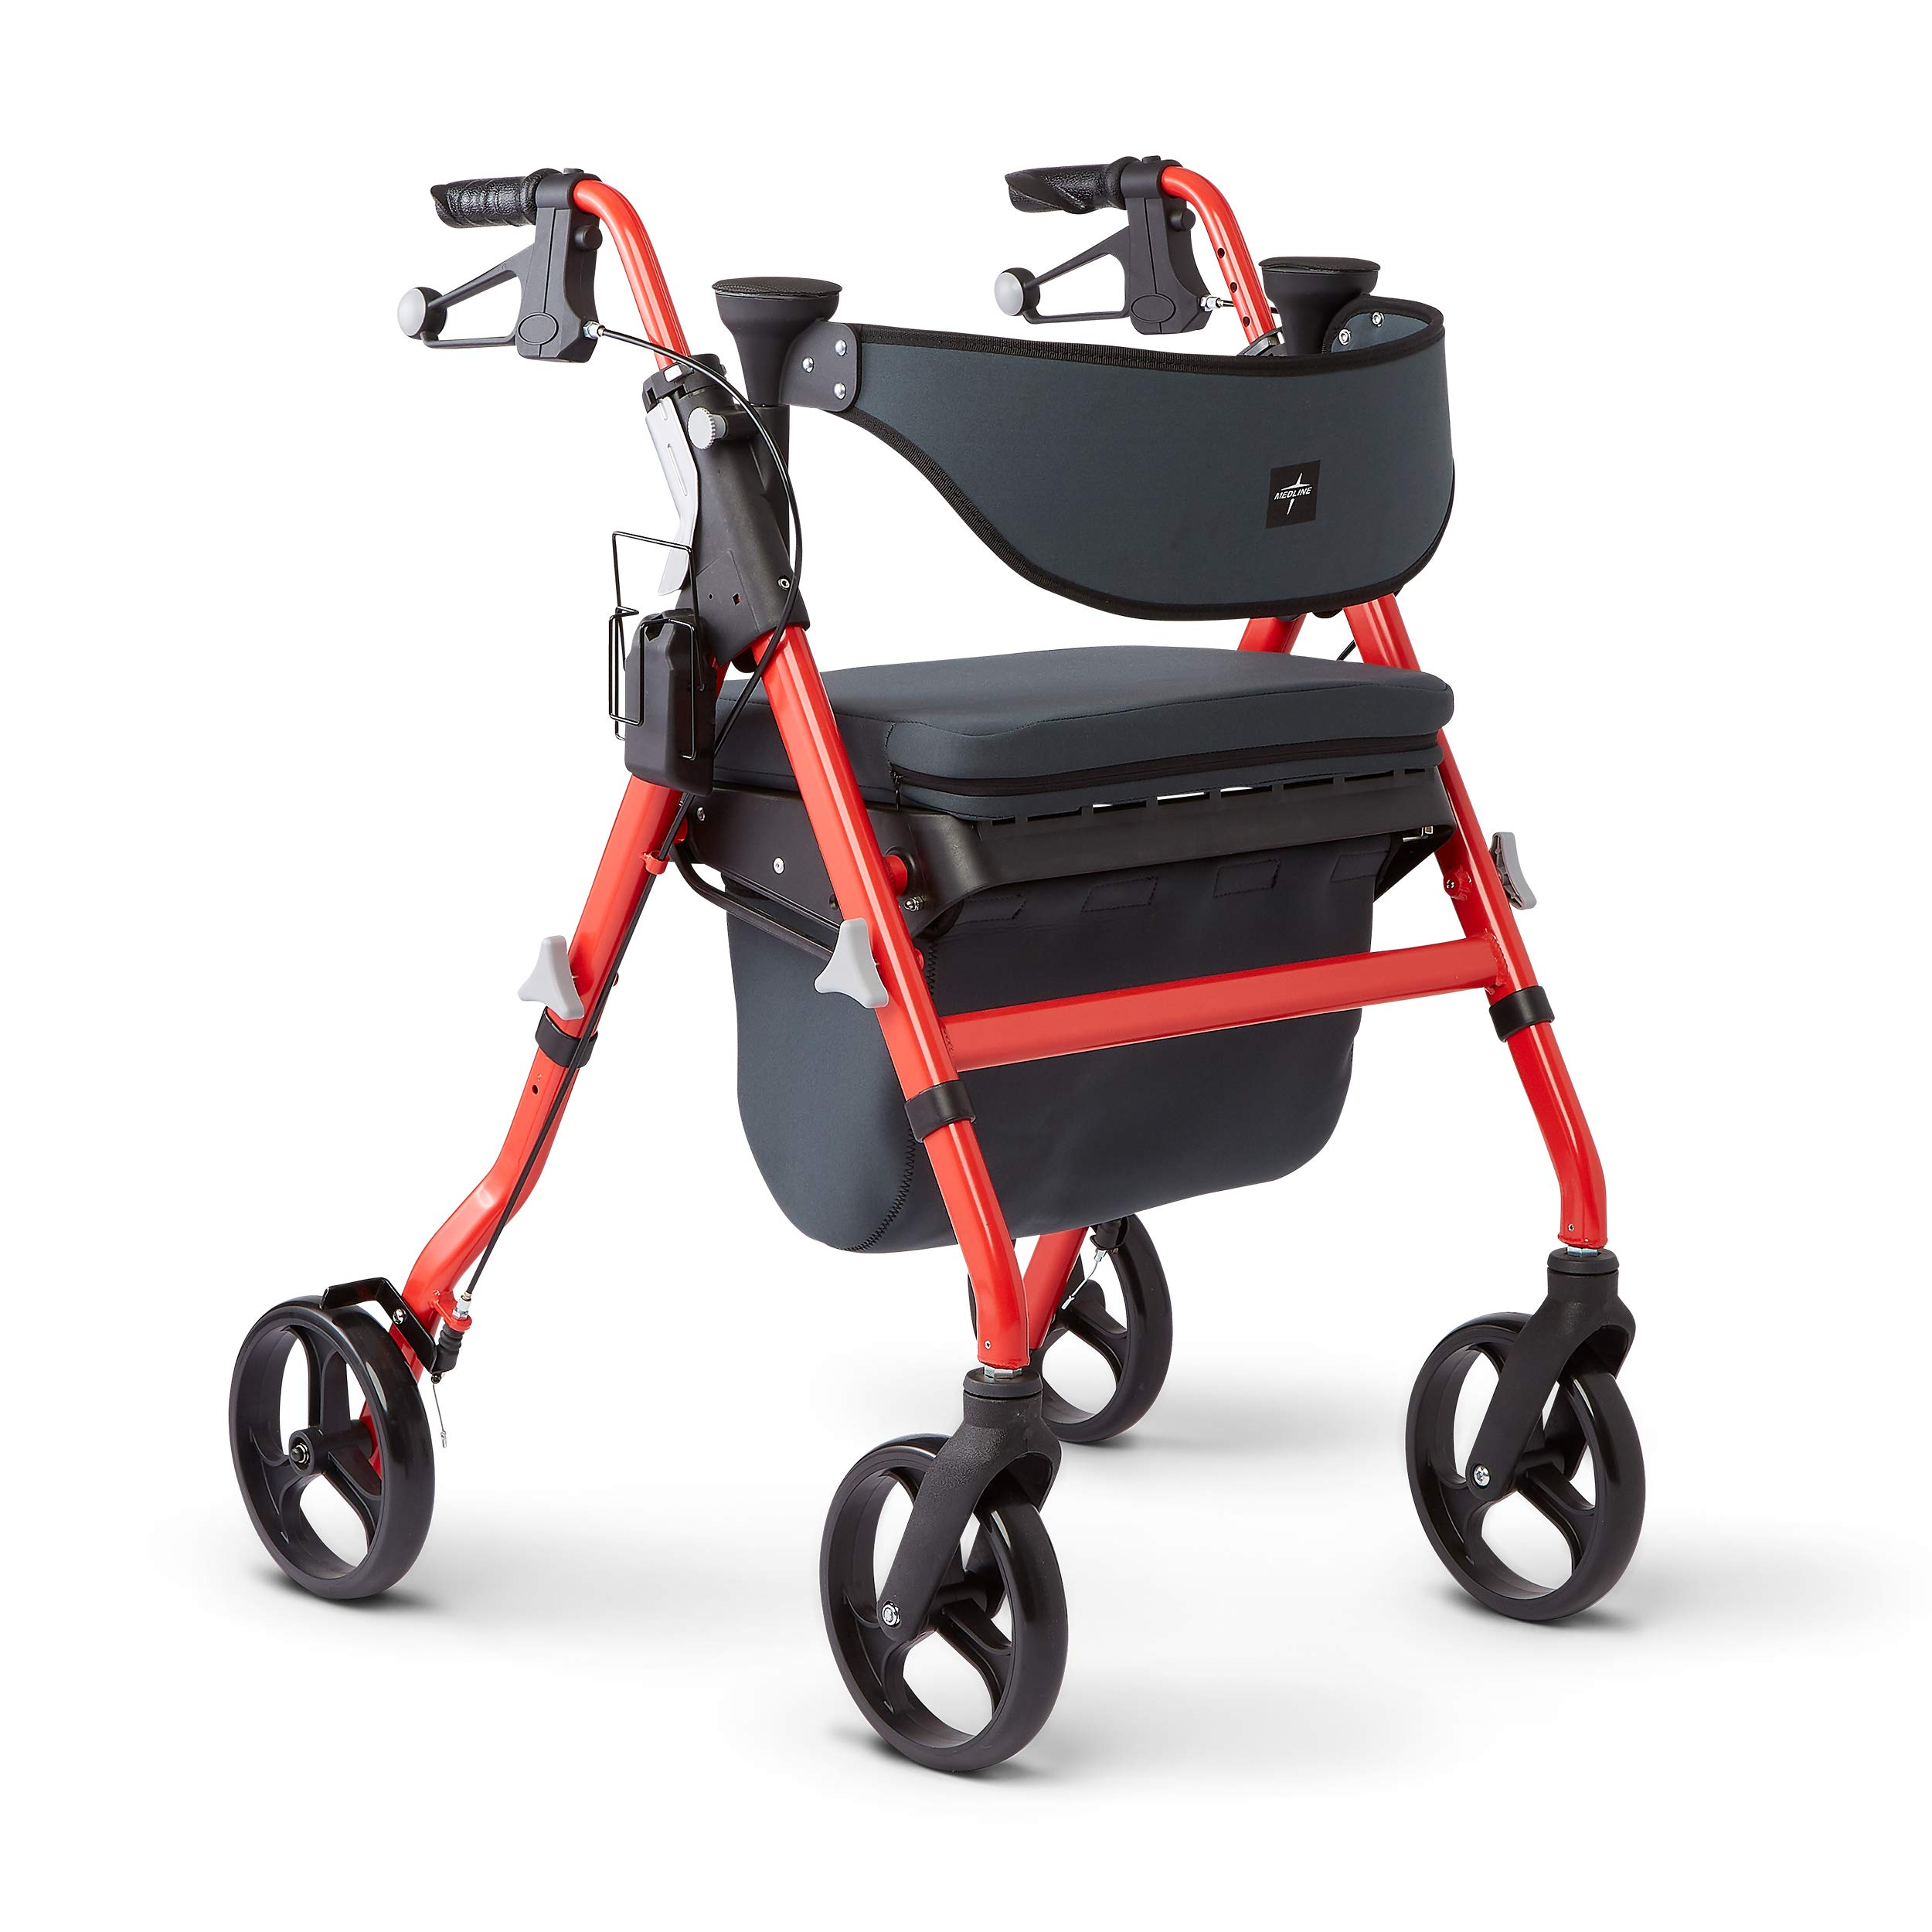 Medline Premium Empower Rollator Walker with Seat, Comfort Handles and Thick Backrest, Folding Walker for Seniors, Microban Antimicrobial Protection, 8'' Wheels, Red Frame by Medline